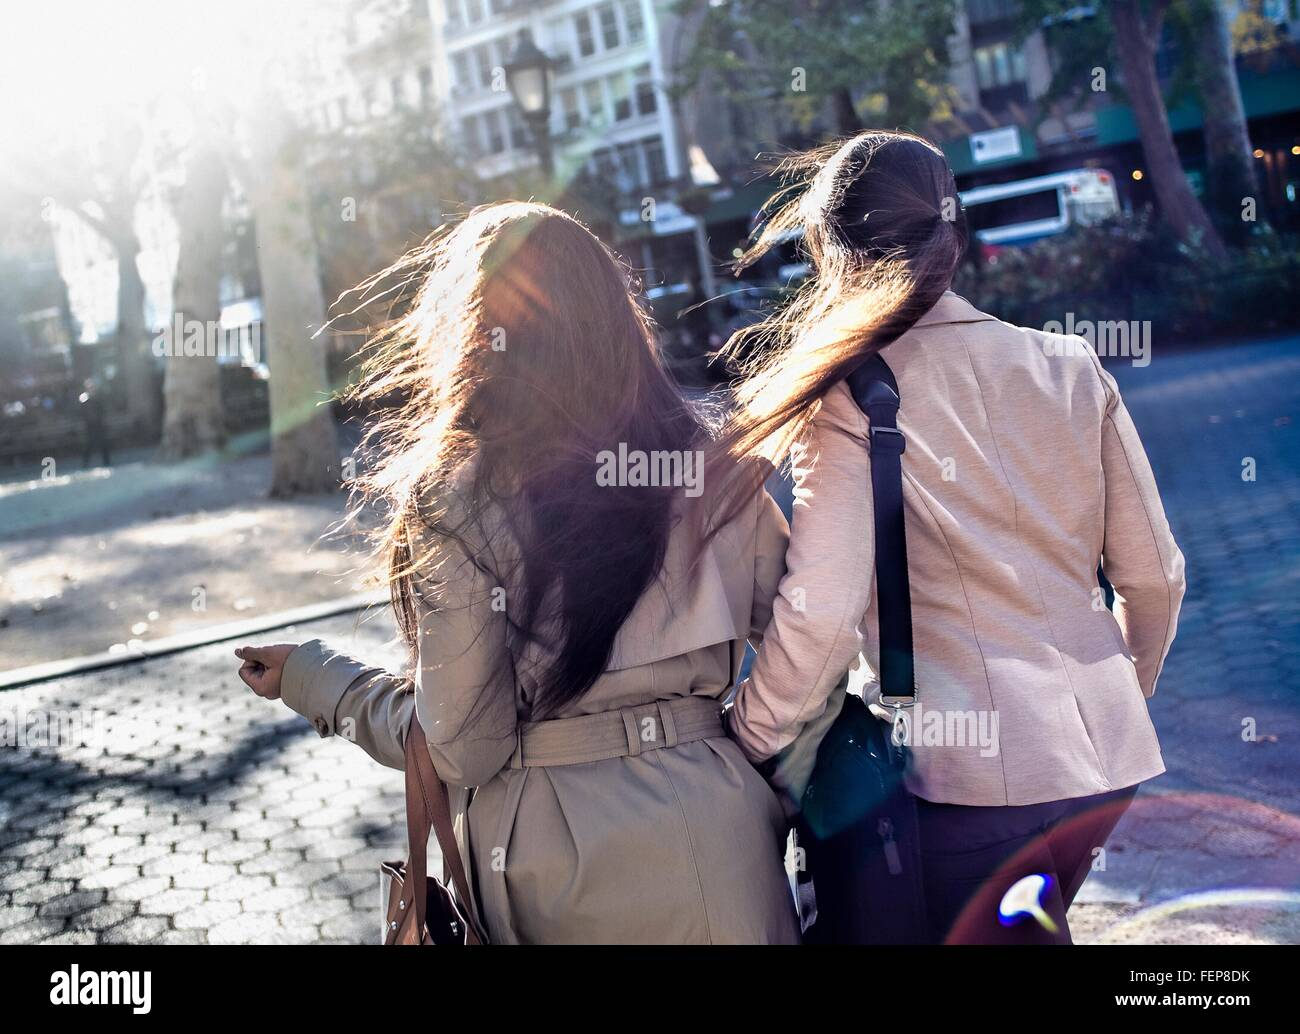 Rear view of young adult female twins walking through city park - Stock Image